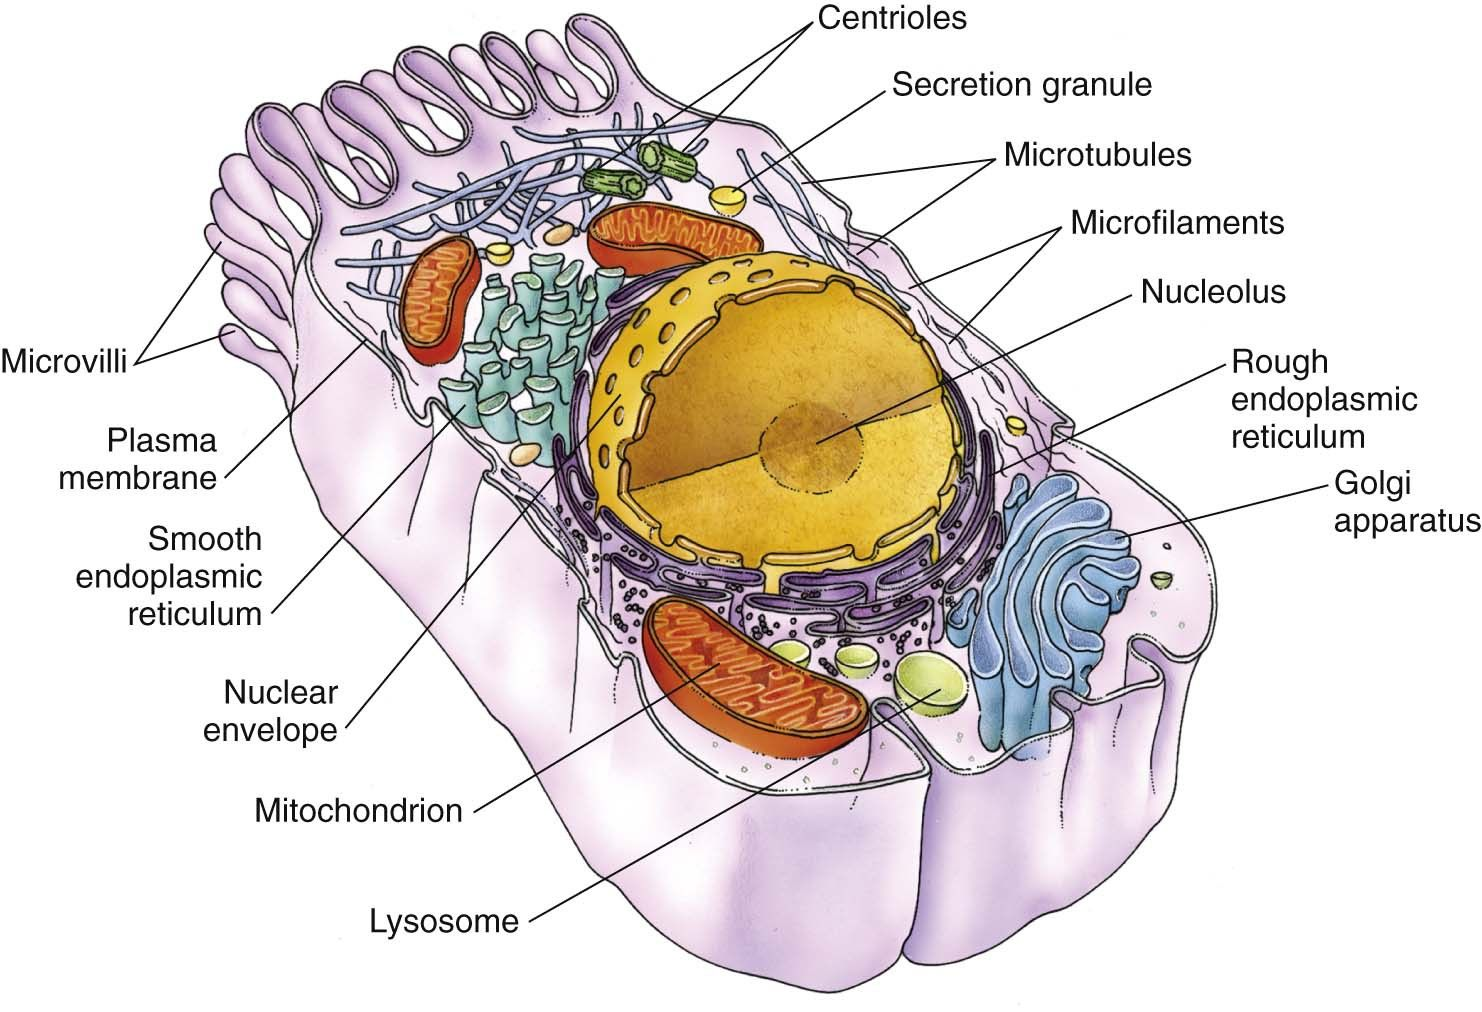 The cytoplasm is the cellular material outside the nucleus